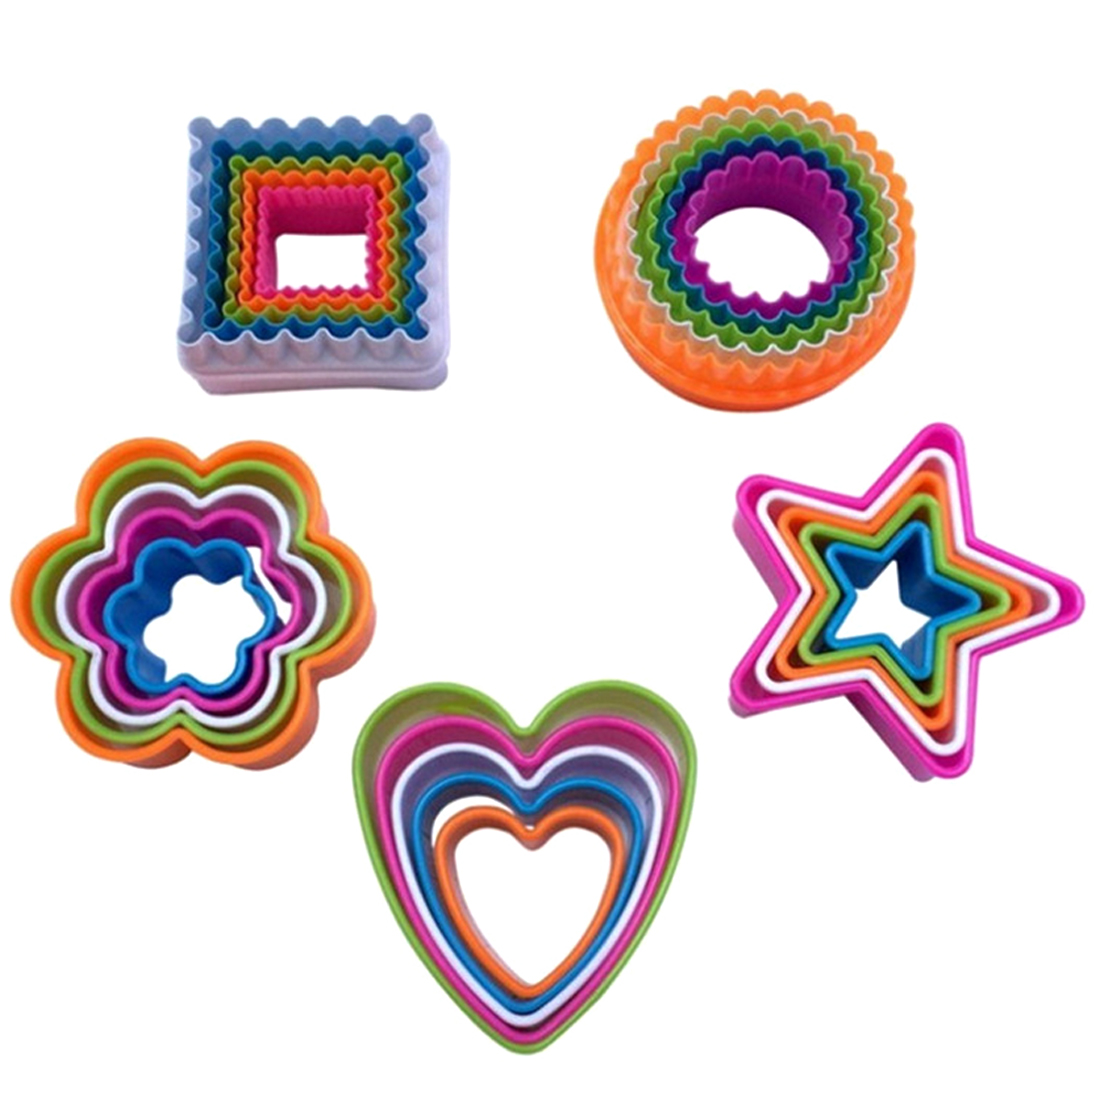 5Pcs/set Cake Decorations Baking Tools Heart Star Cookies Cutter Molds Plastic Cake Mould Biscuit Plunger Forms For DIY Cookies